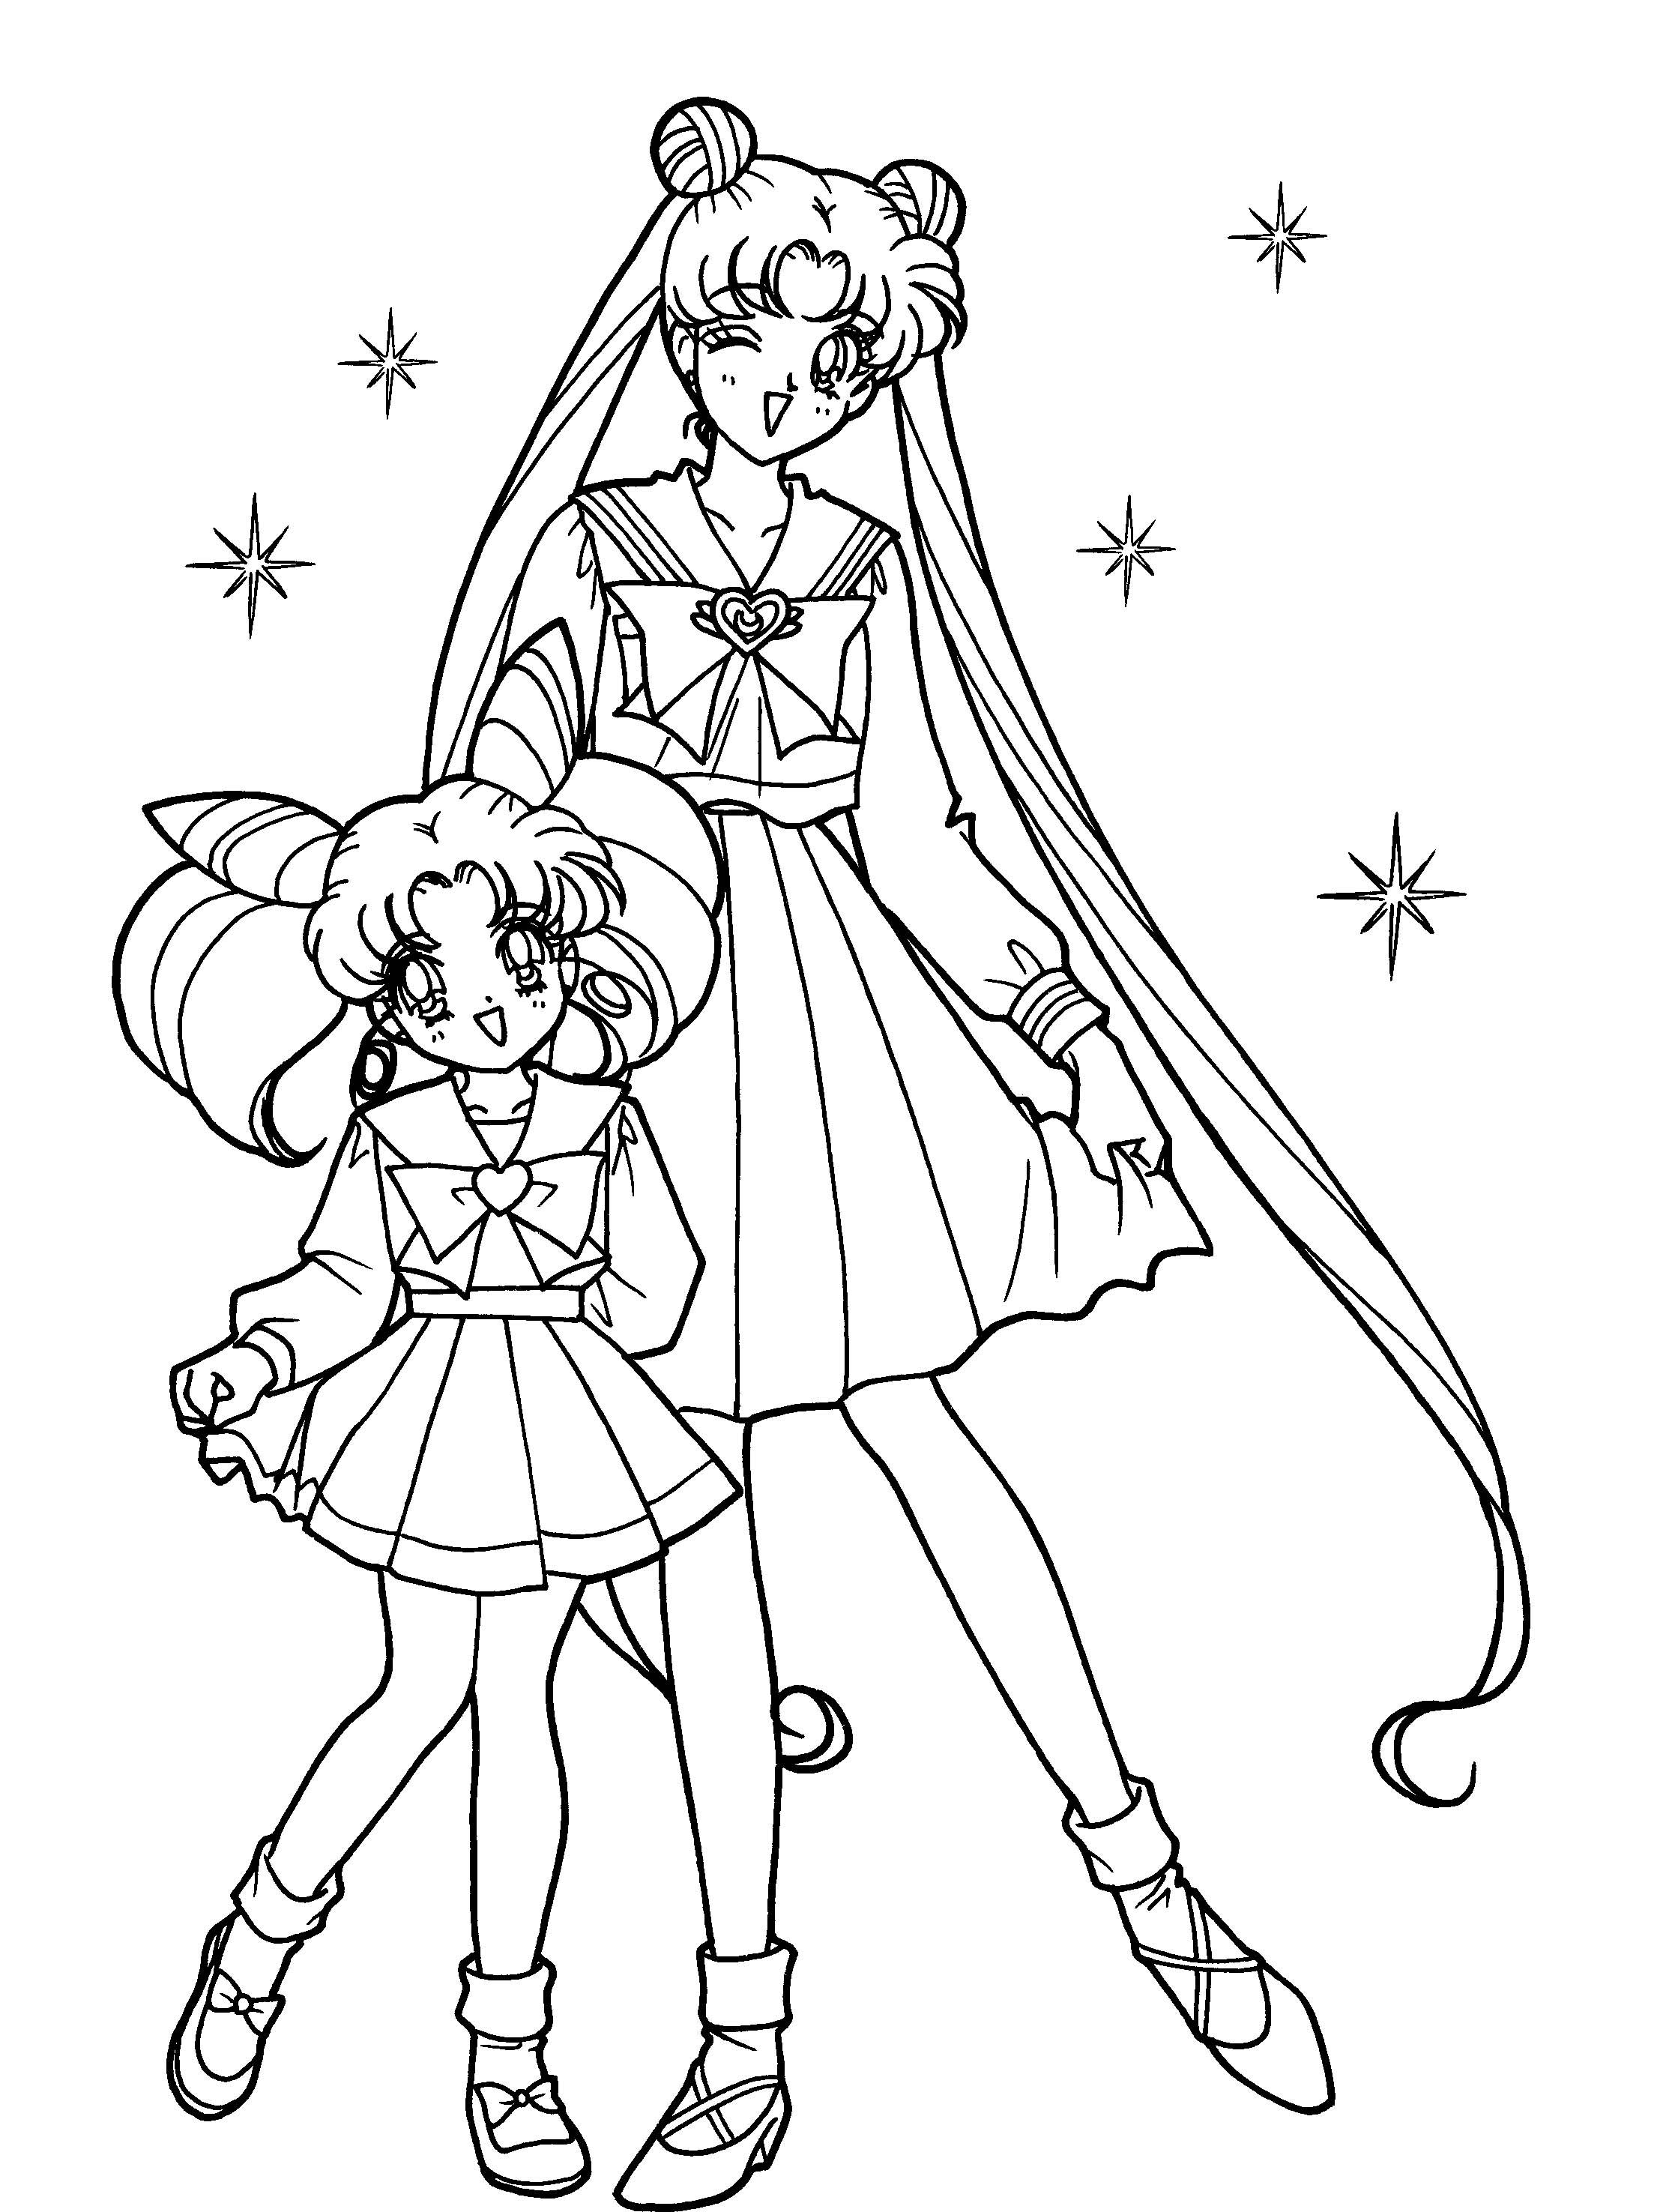 sailor moon with sister coloring pages sailor moon pinterest